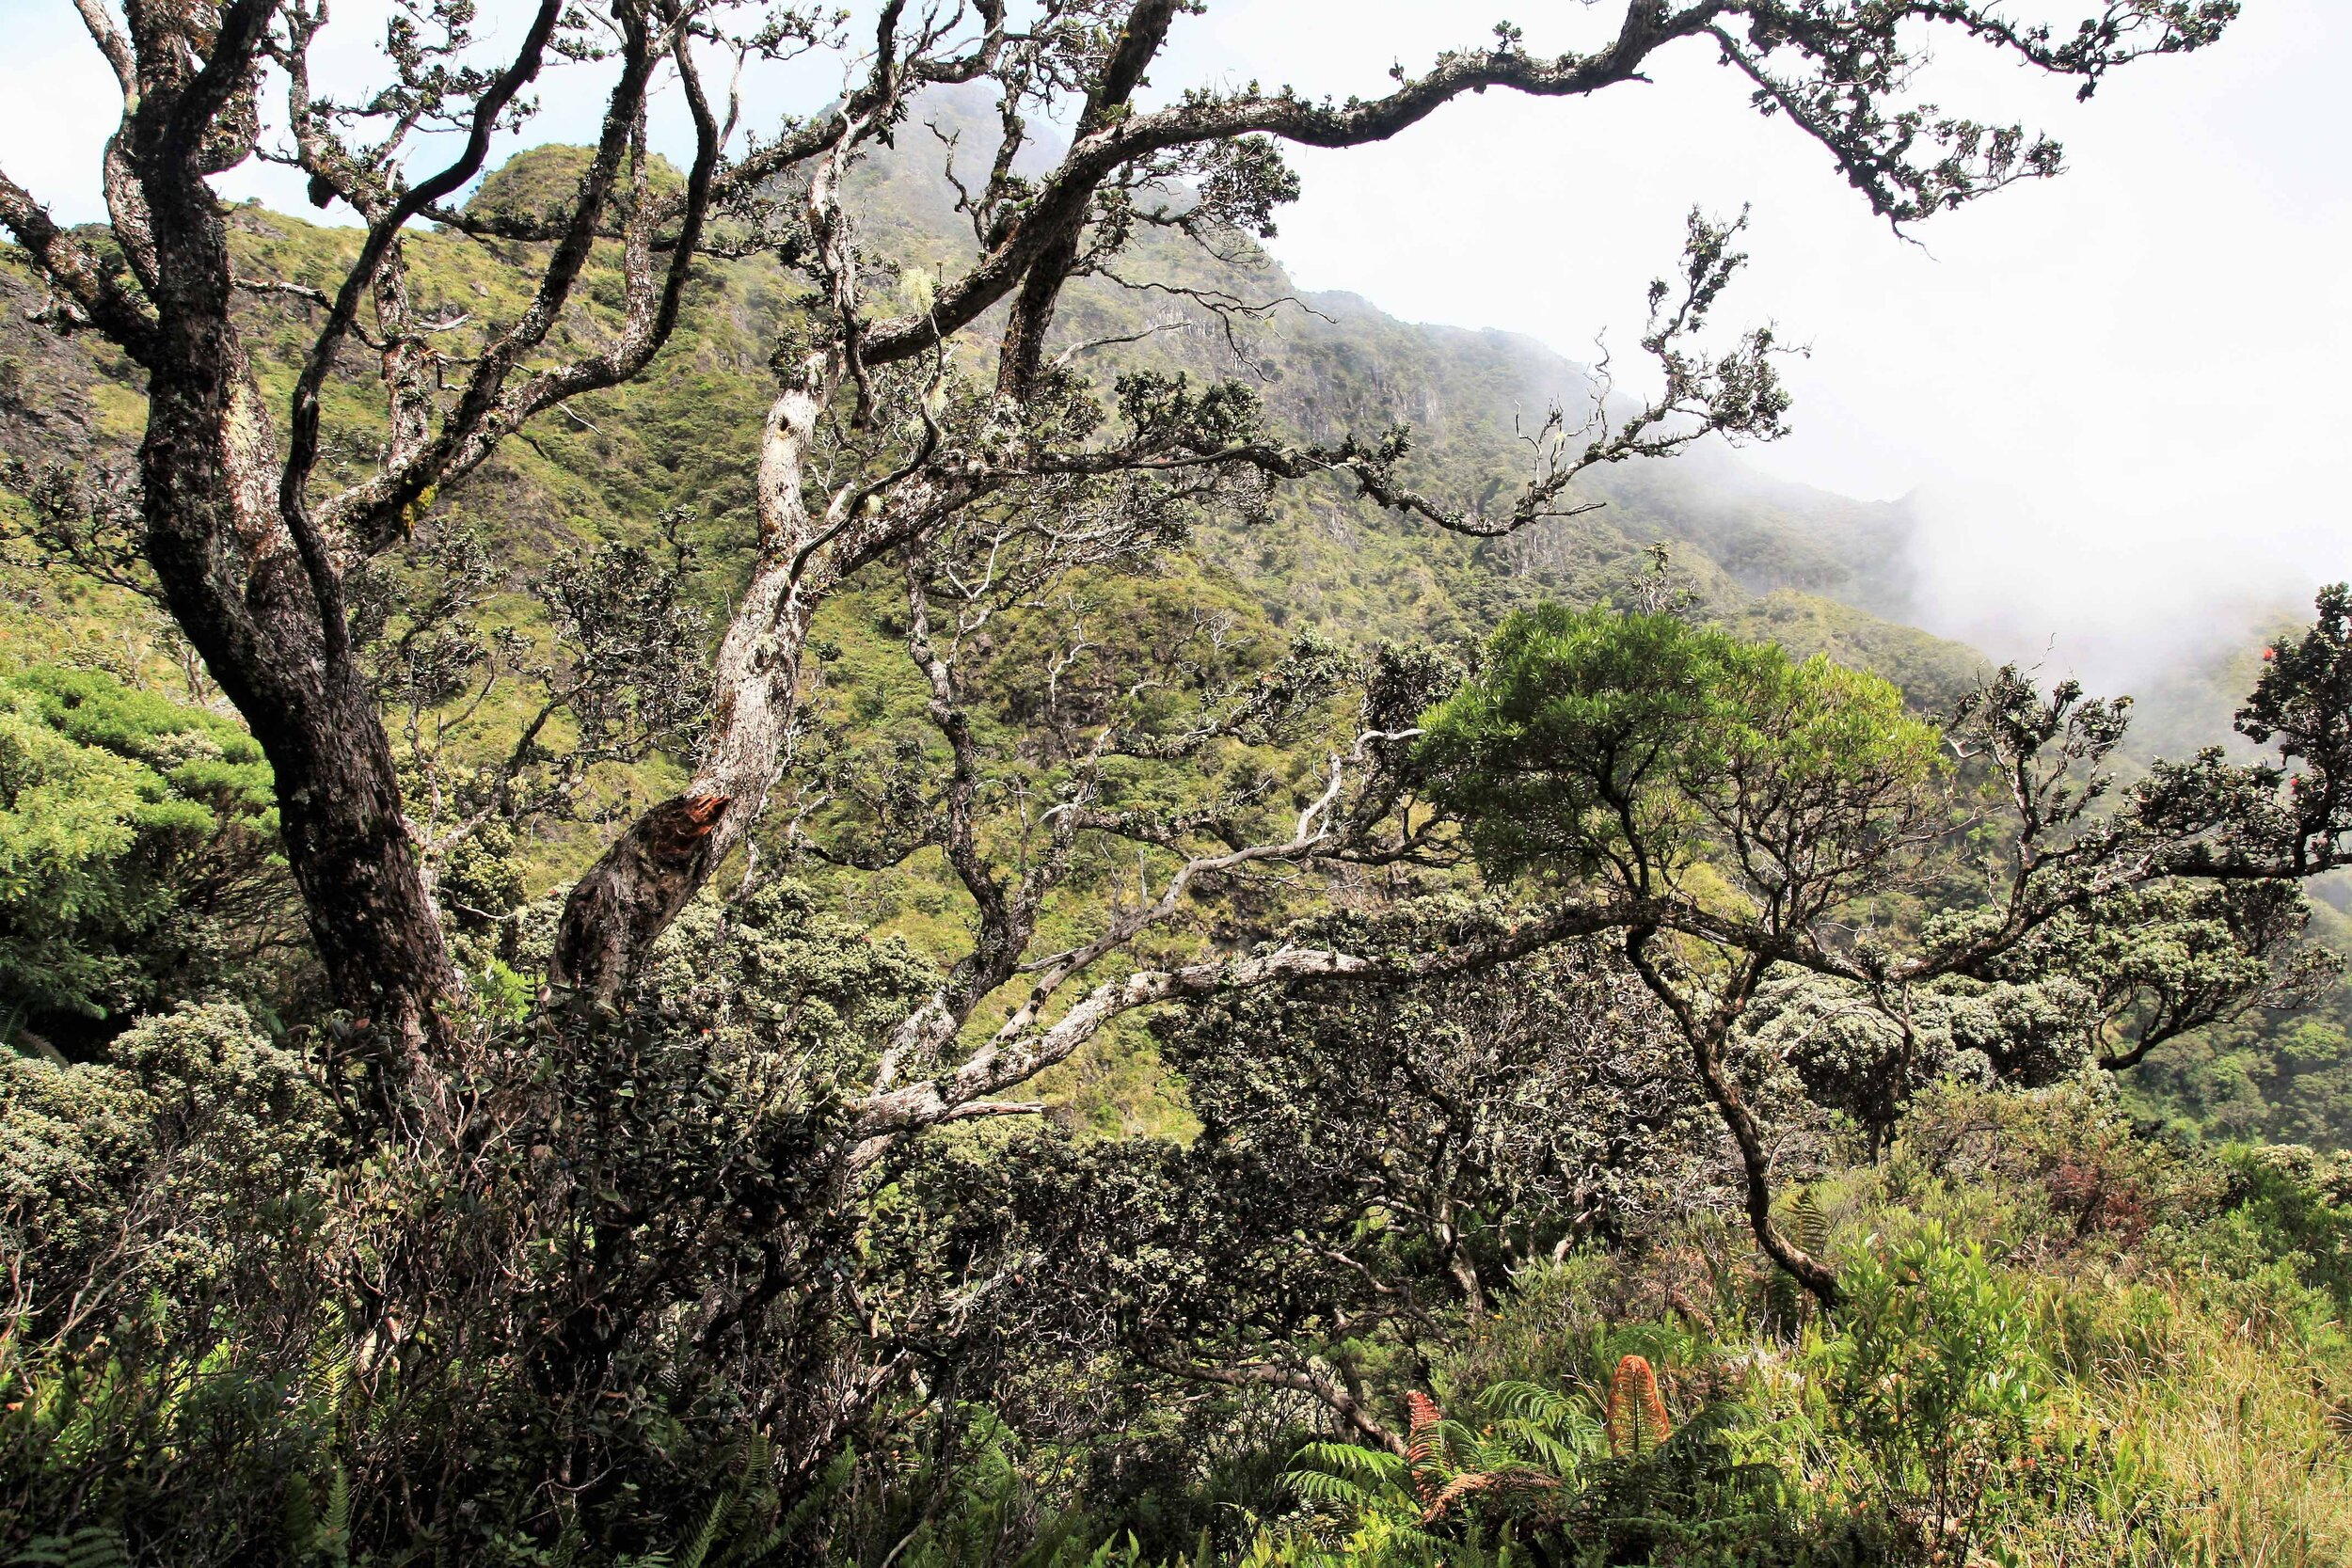 Remnant patch of Maui's little-remaining native cloud forest at the other side of Haleakala Crater.